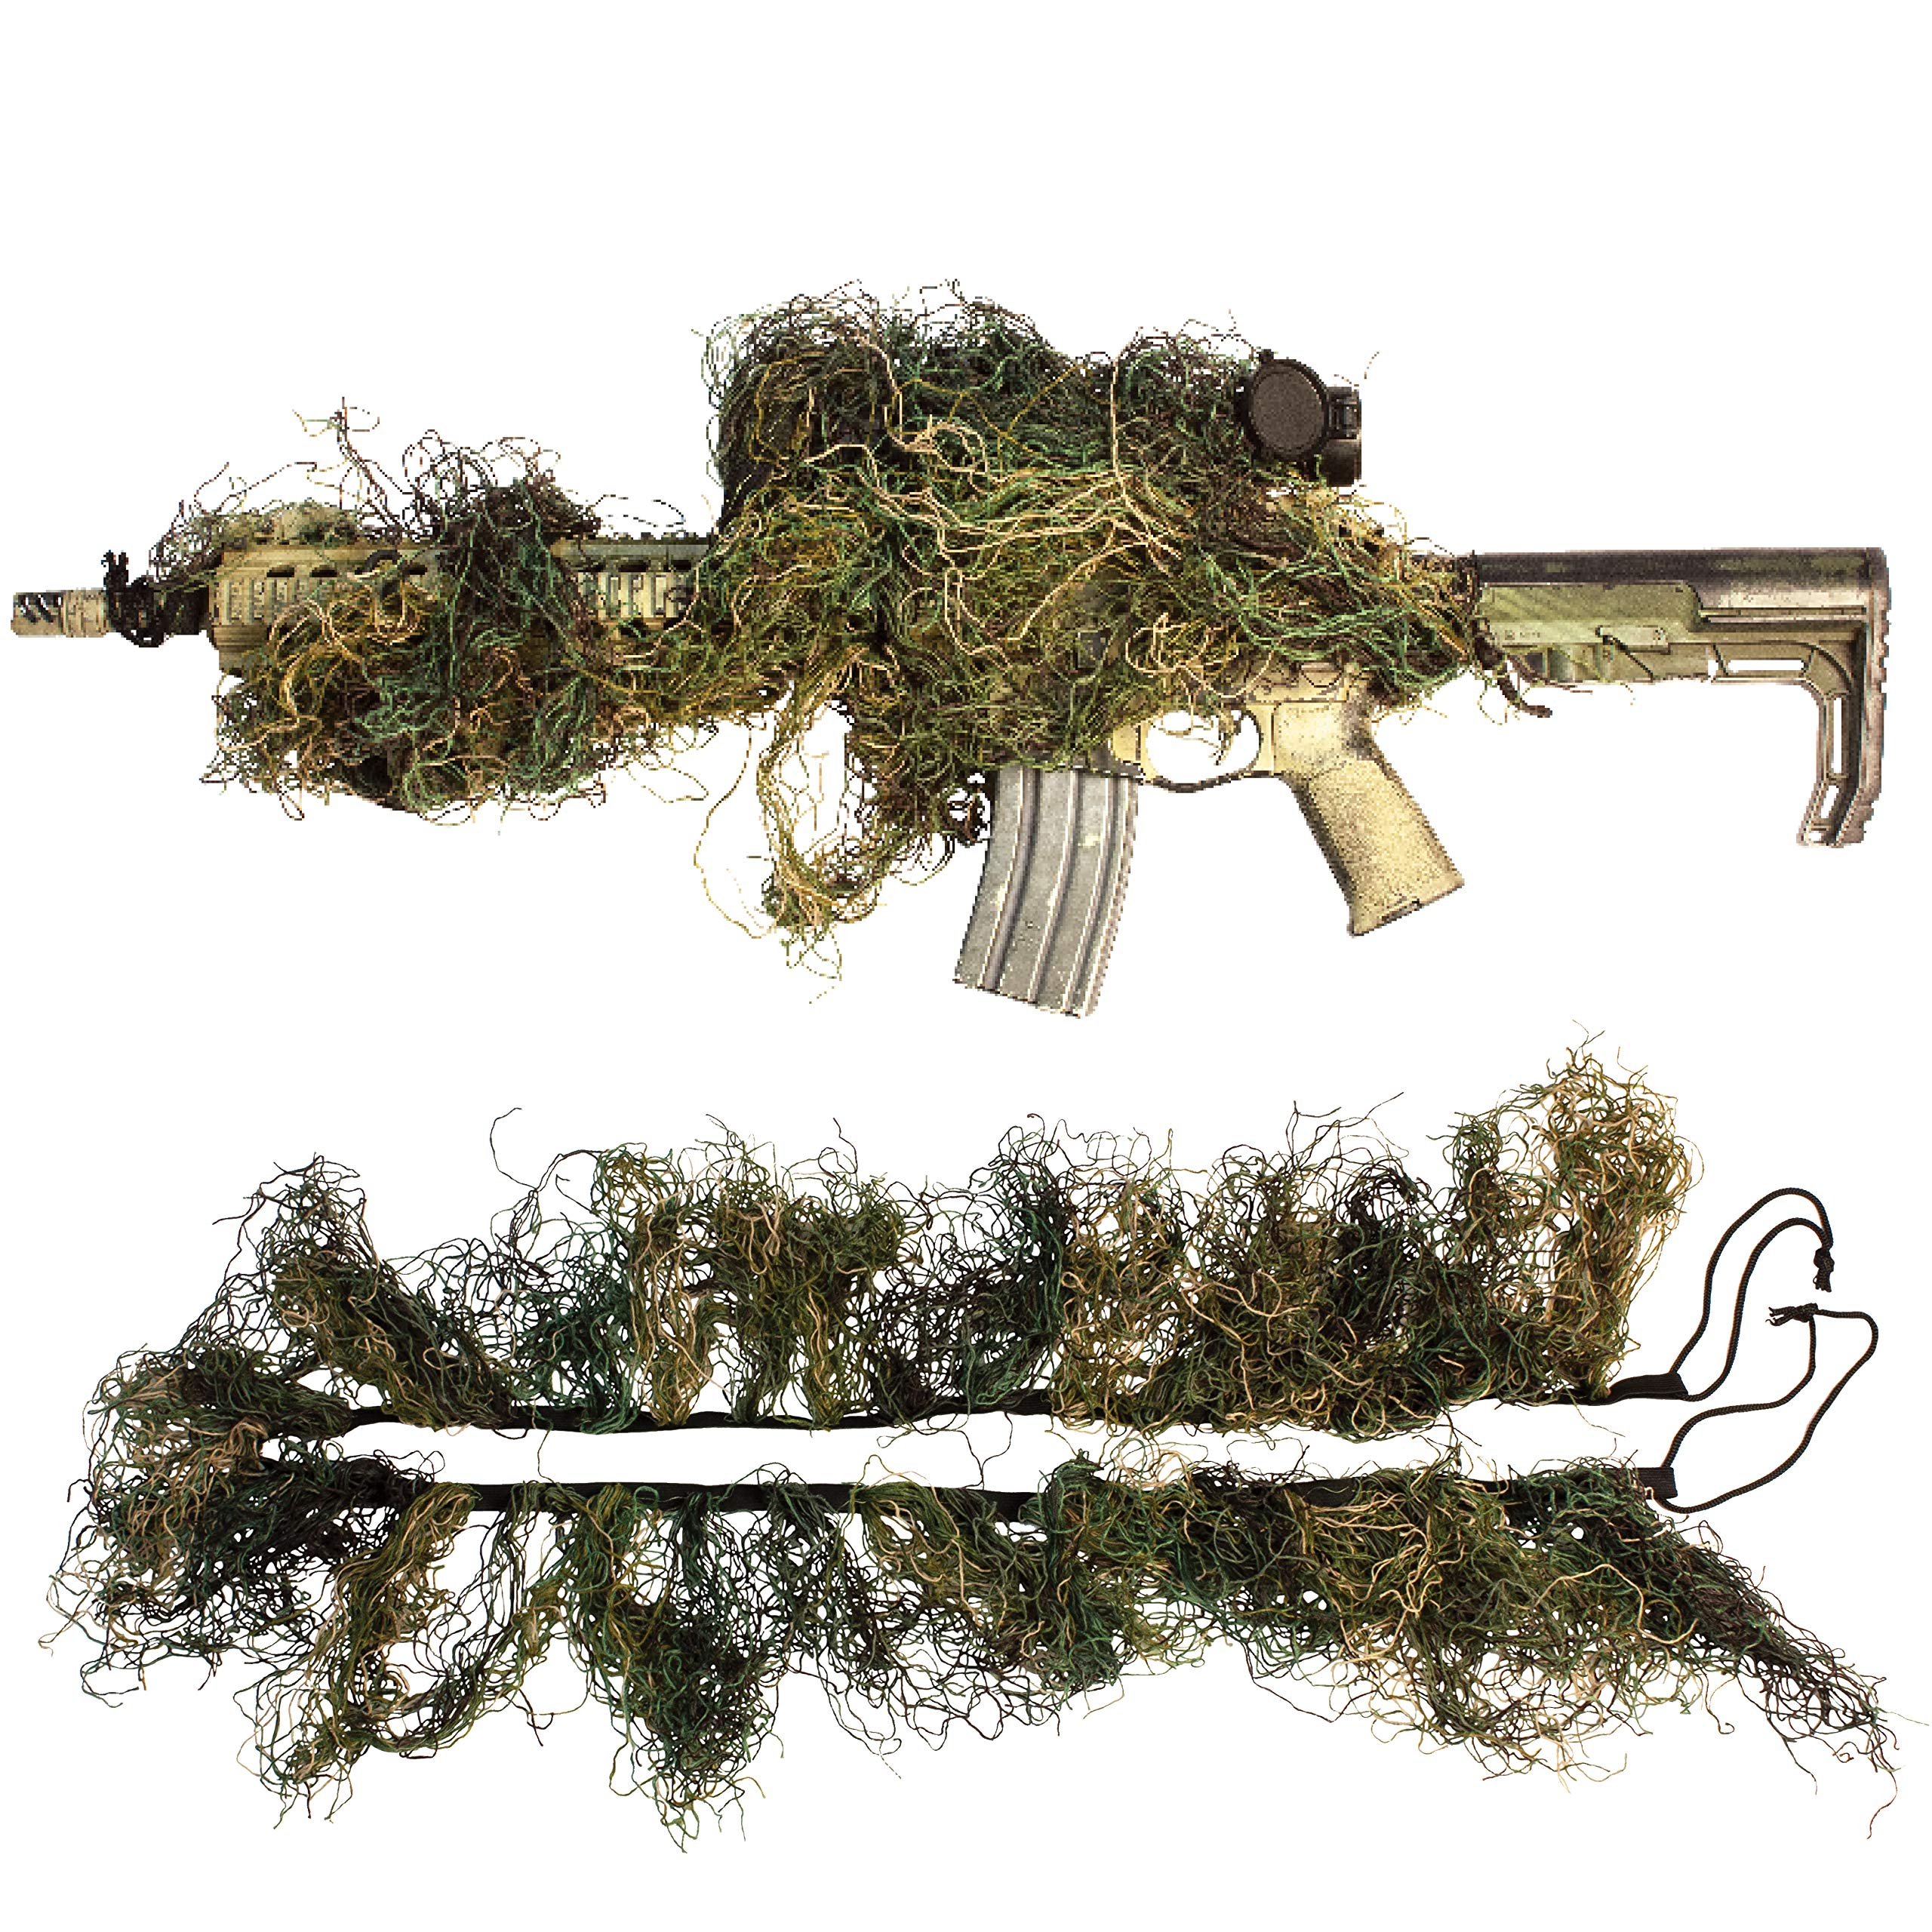 Red Rock Outdoor Gear - Ghillie Suit by Red Rock Outdoor Gear (Image #6)